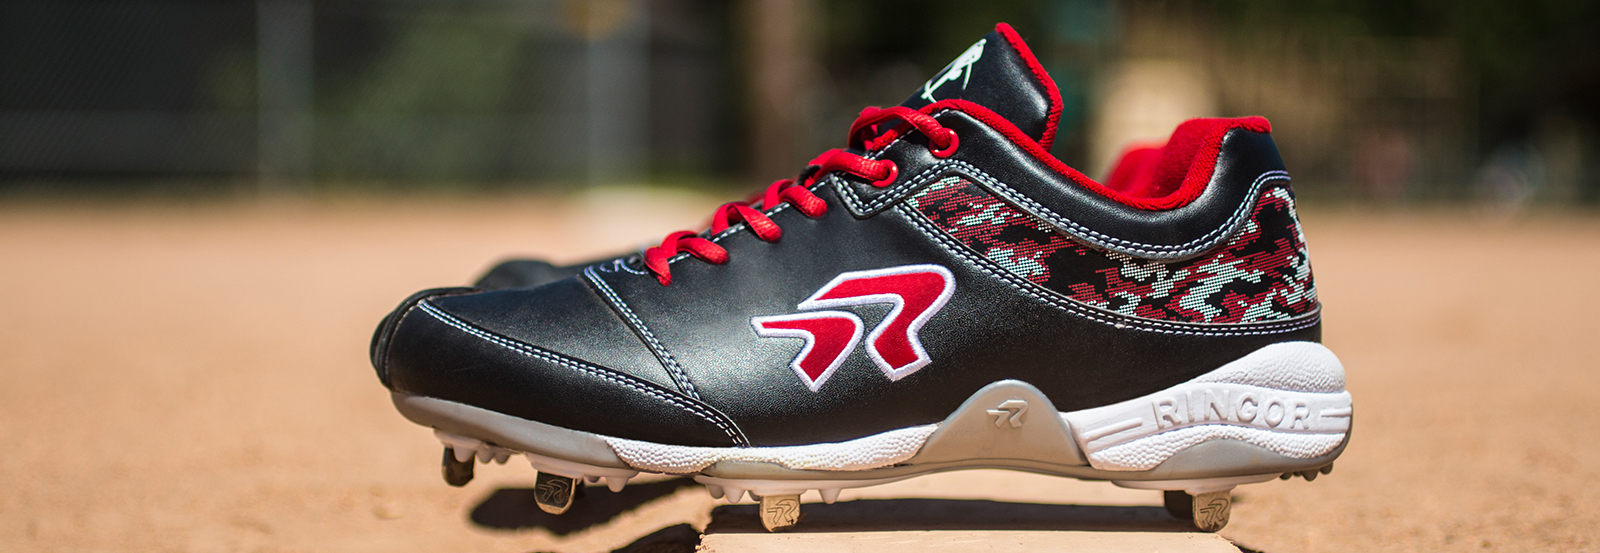 softball-cleats-page.jpg